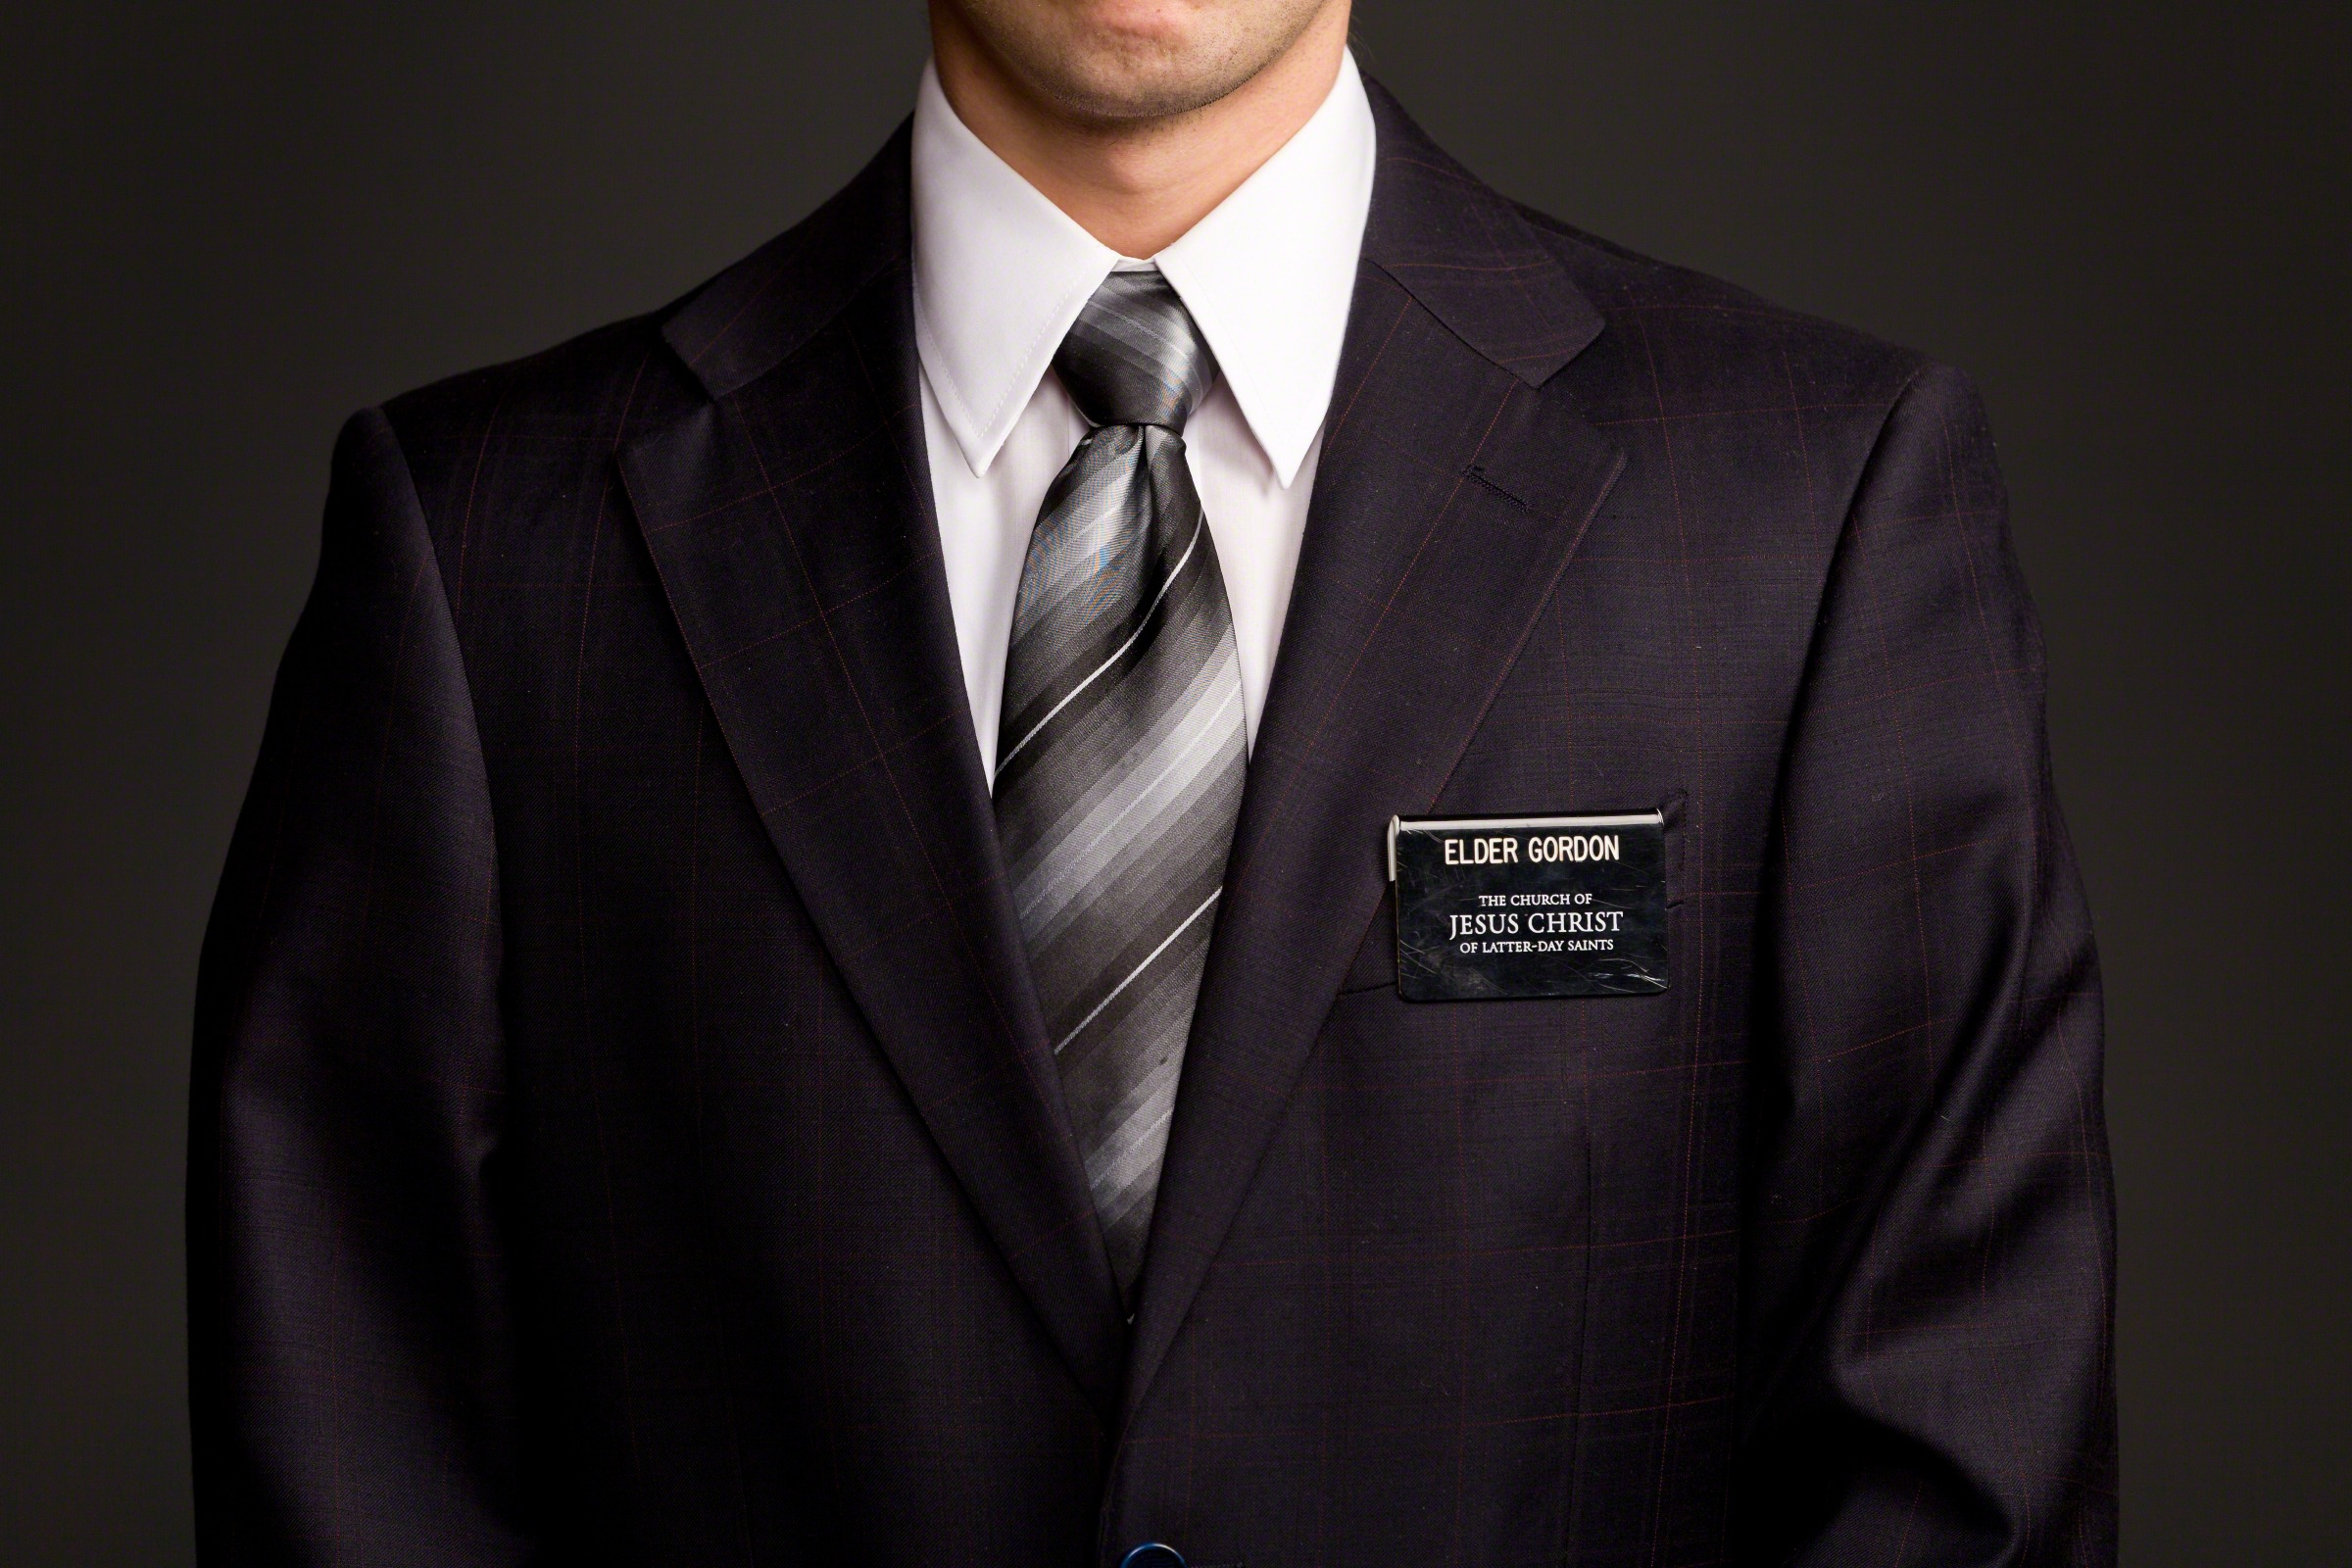 dating lds missionary I missed nearly 2 years of college, dating, etc before i went on my mission, they told going on an lds mission is a total waste of time.